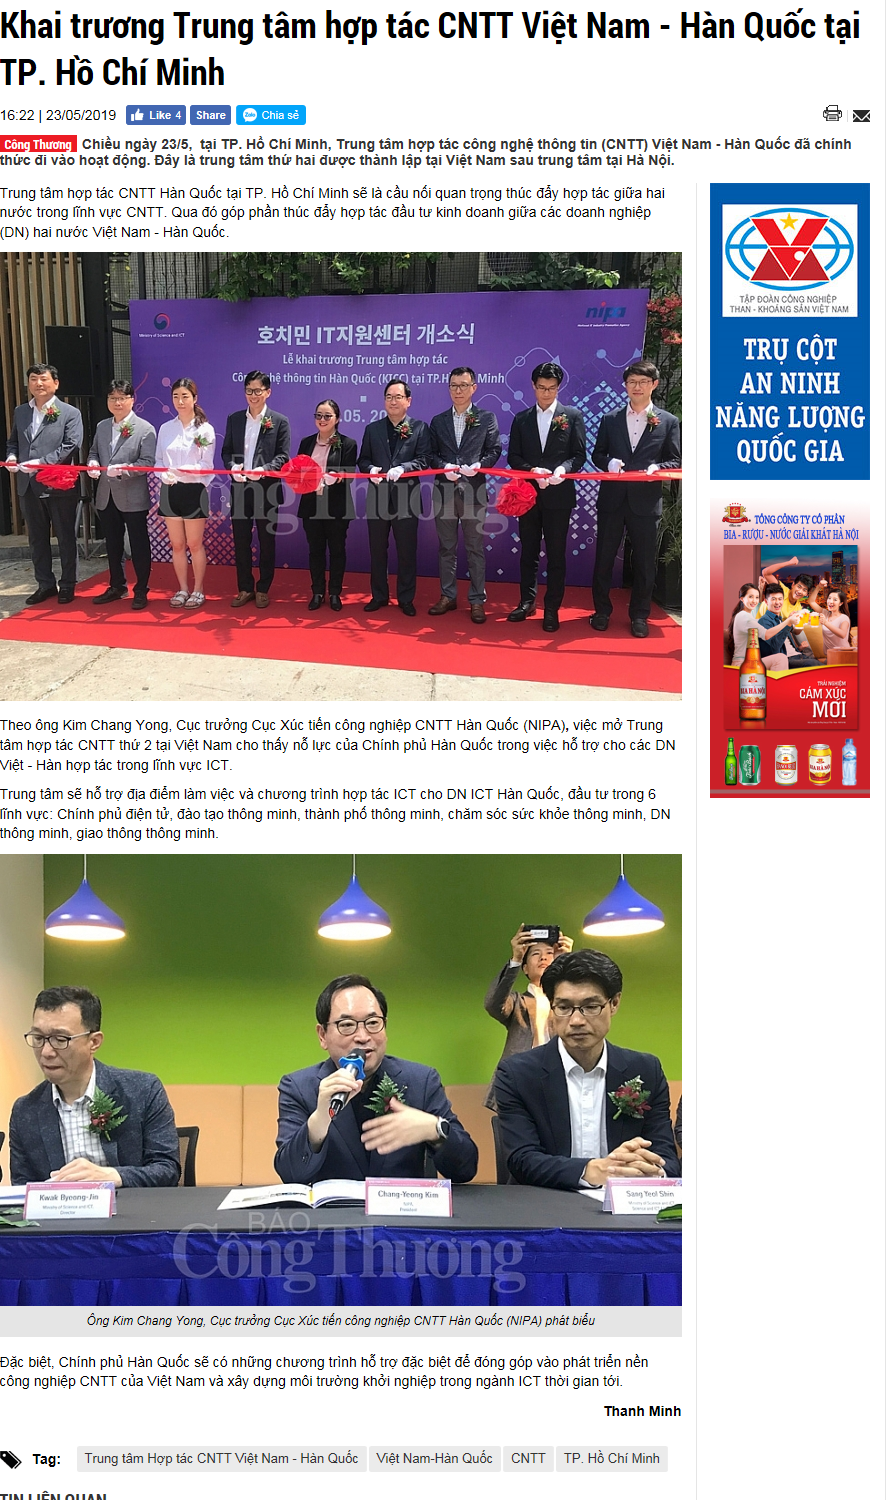 congthuong_vn_20190527_161707.png